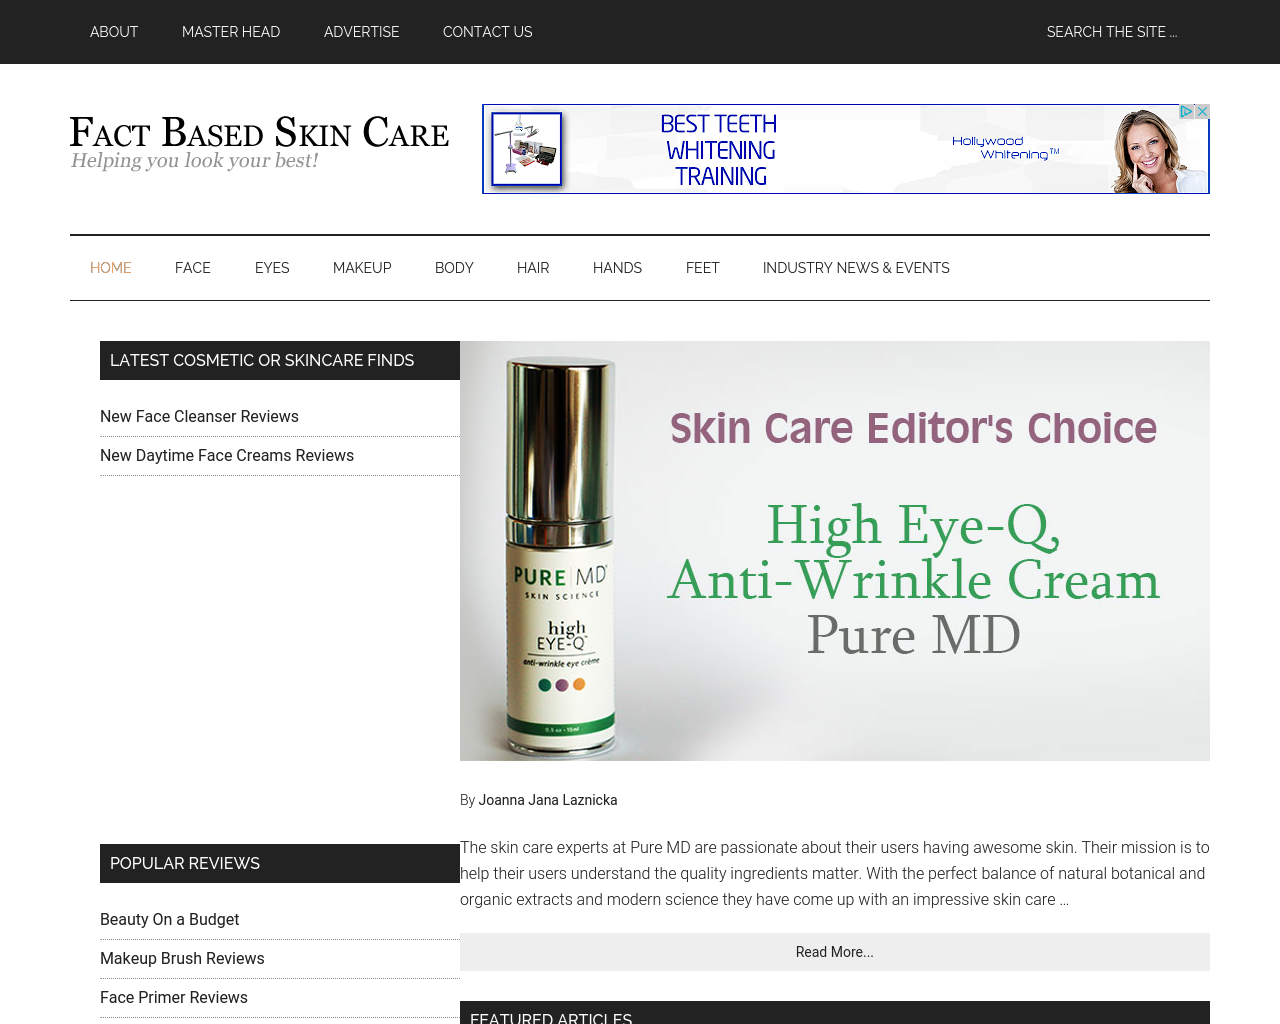 Fact-Based-Skin-Care-Advertising-Reviews-Pricing